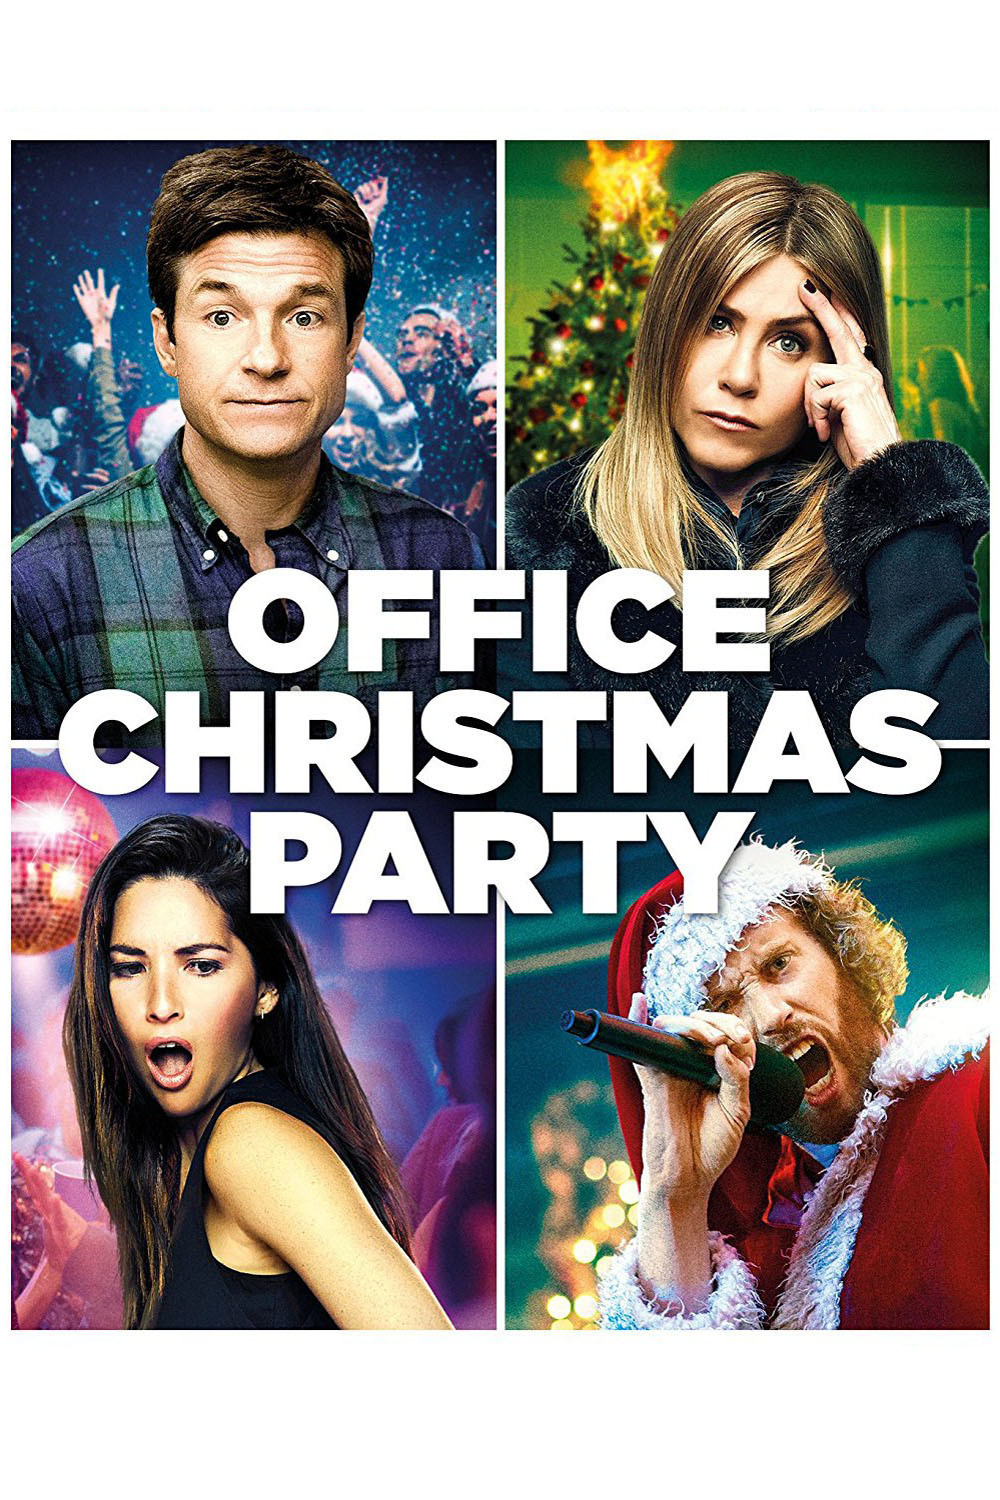 Moviereviews.com : Movie Posters For : Office Christmas Party